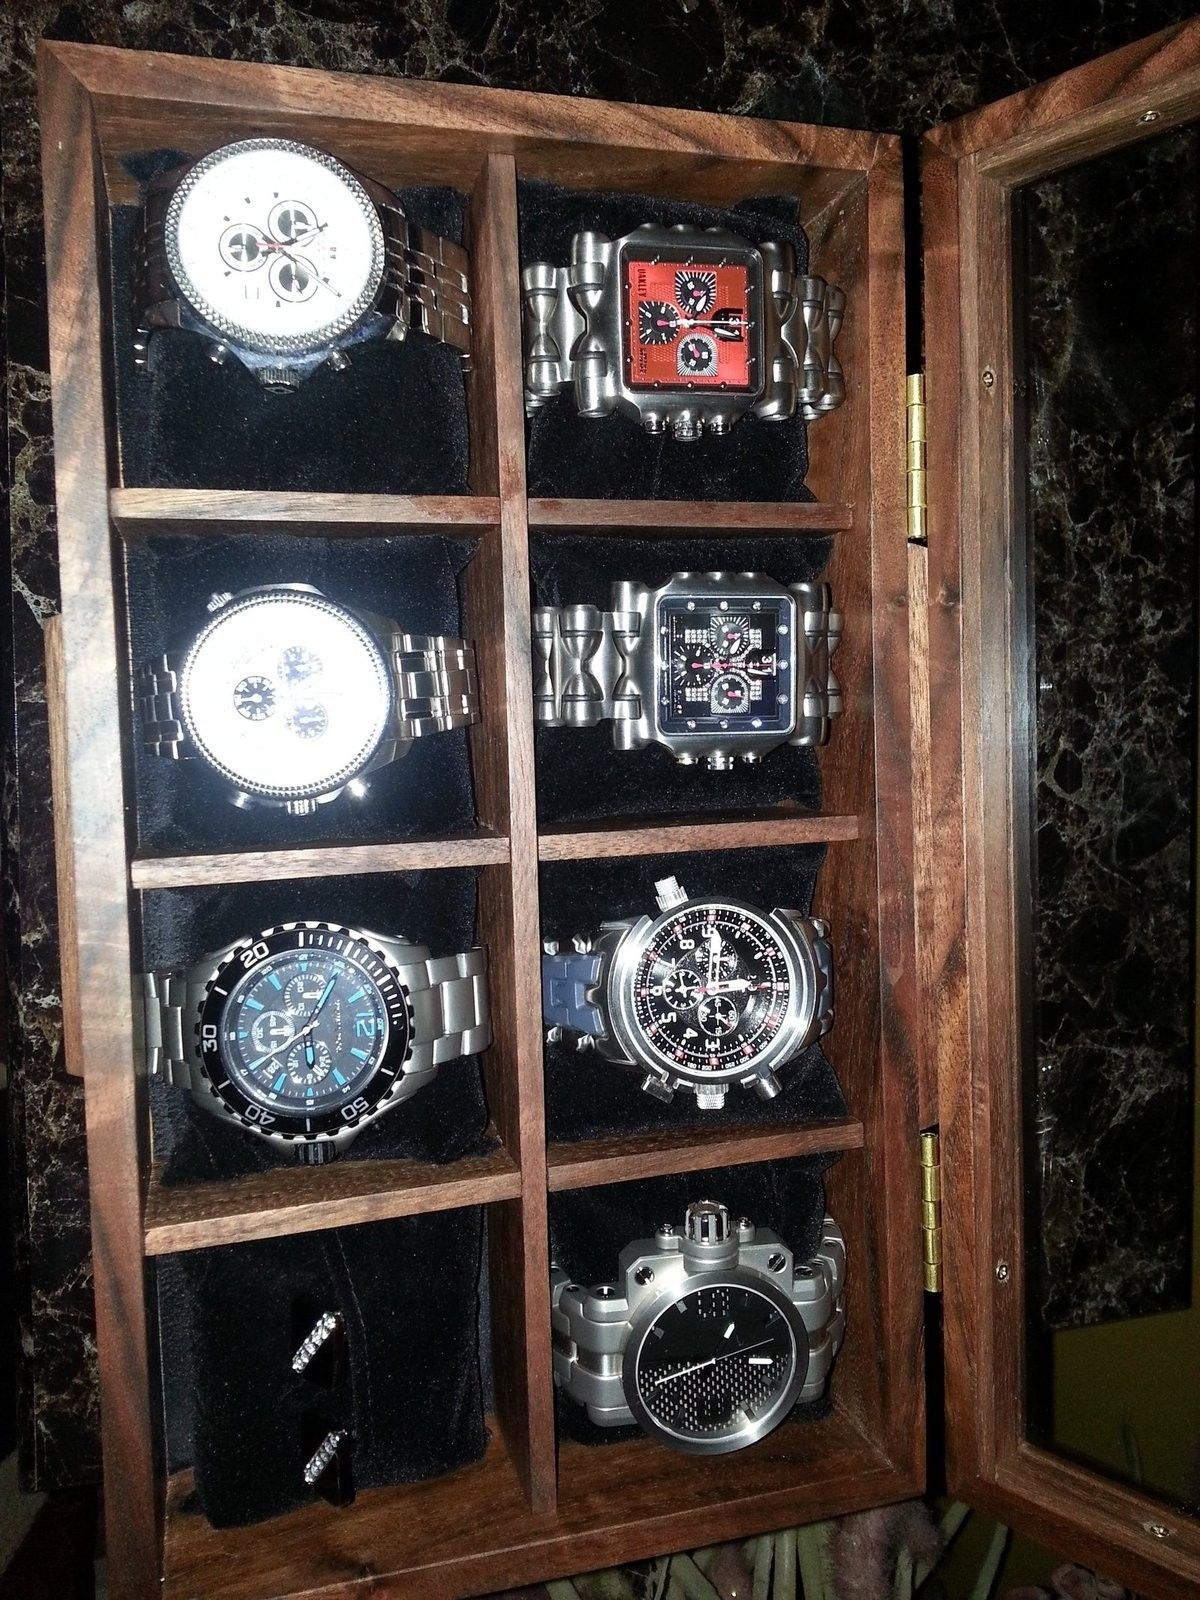 Got a new watch box.....collection growing - 20151201_220241.jpg